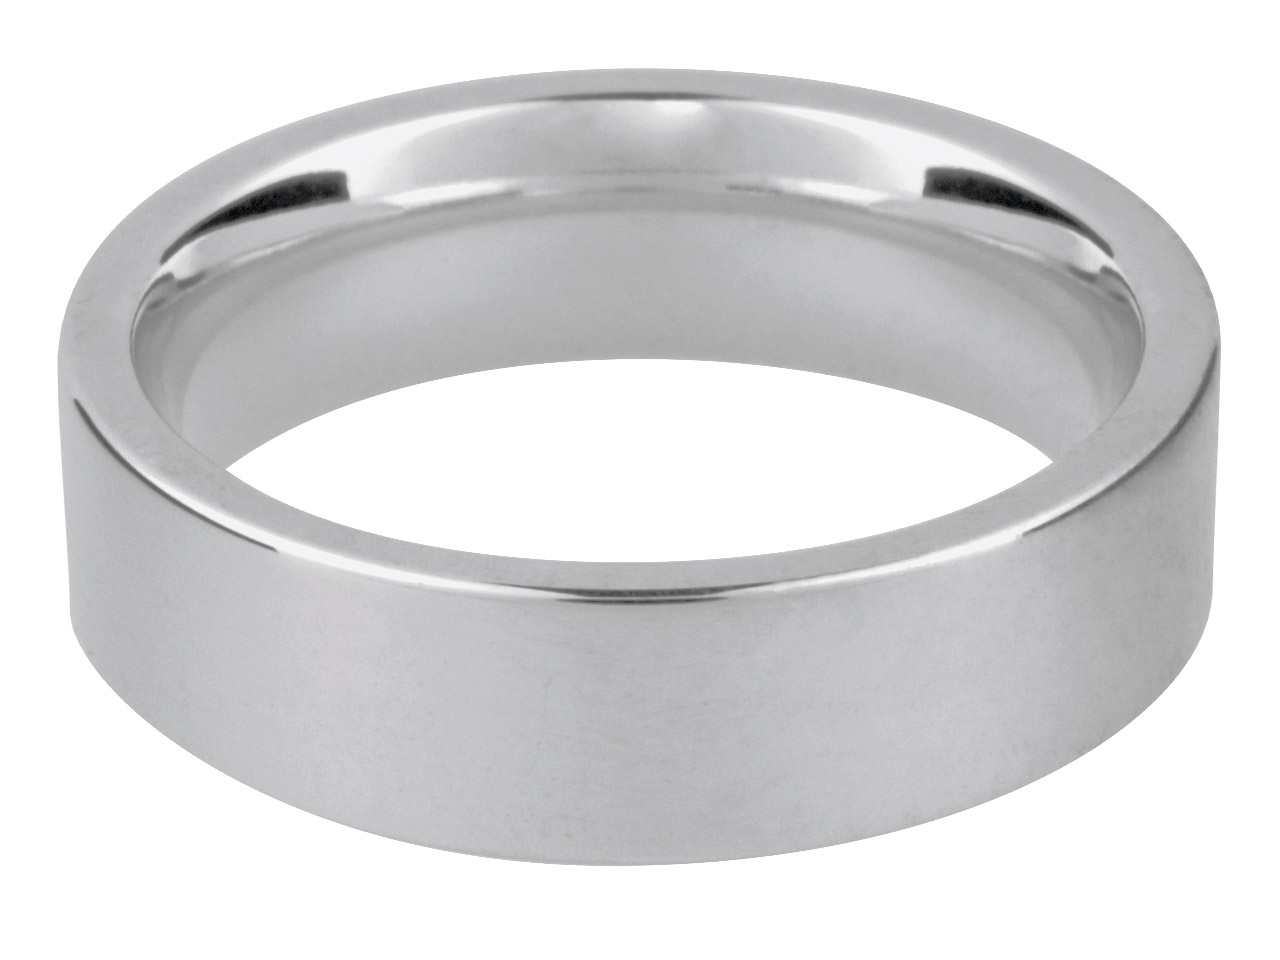 Palladium 500 Easy Fit Wedding Ring 4.0mm V 4.7gms Medium Weight        Hallmarked Wall Thickness 1.61mm